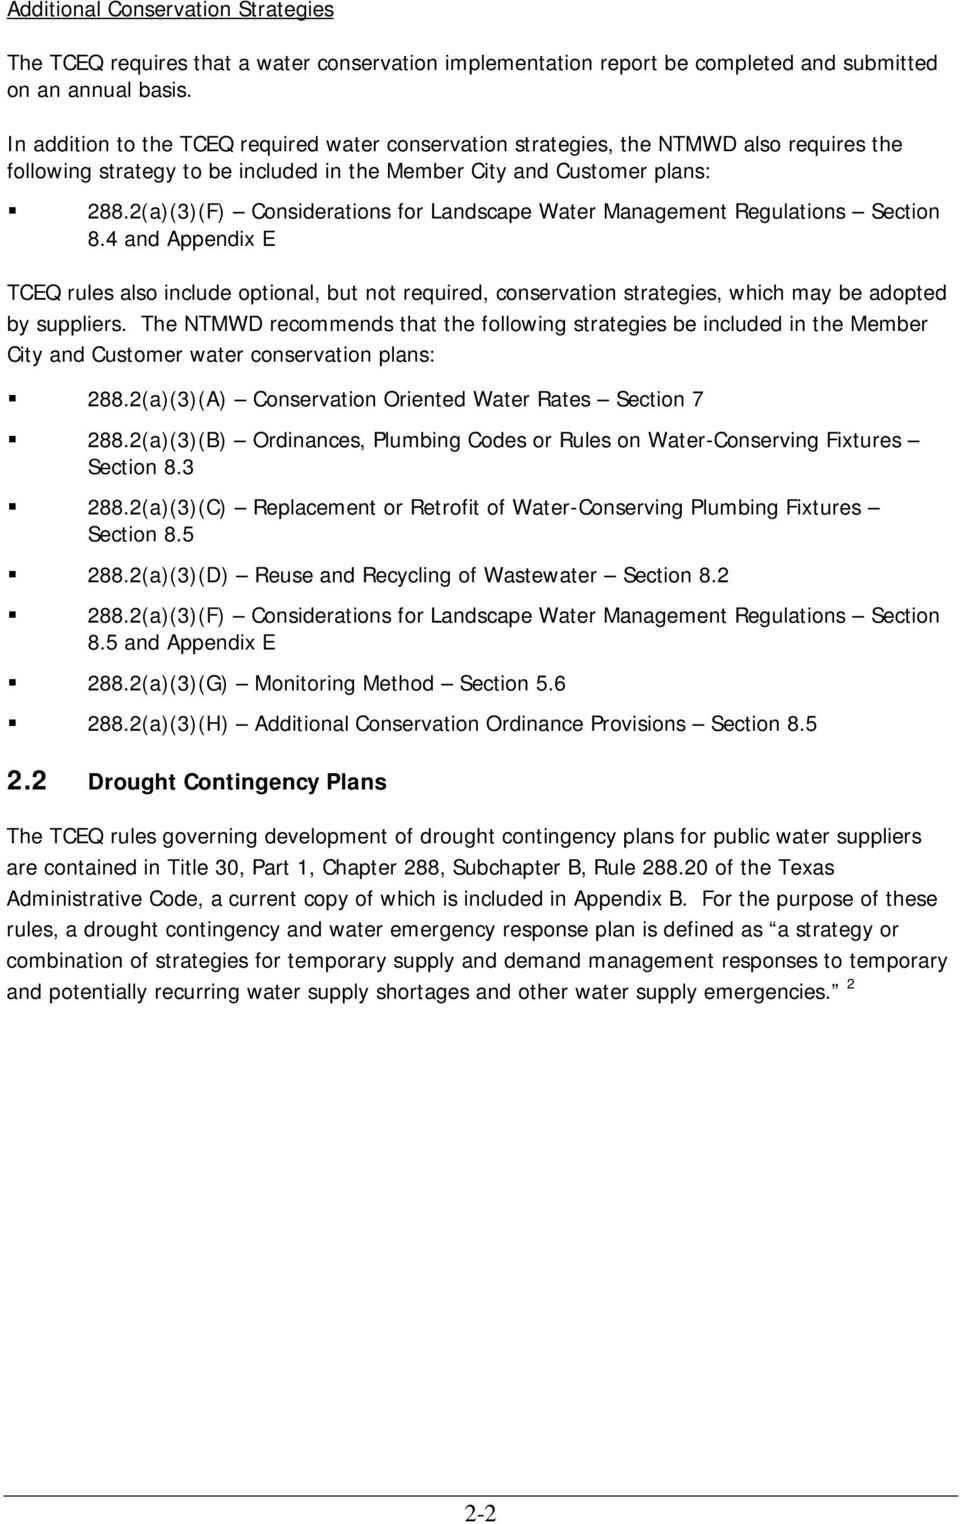 2(a)(3)(F) Considerations for Landscape Water Management Regulations Section 8.